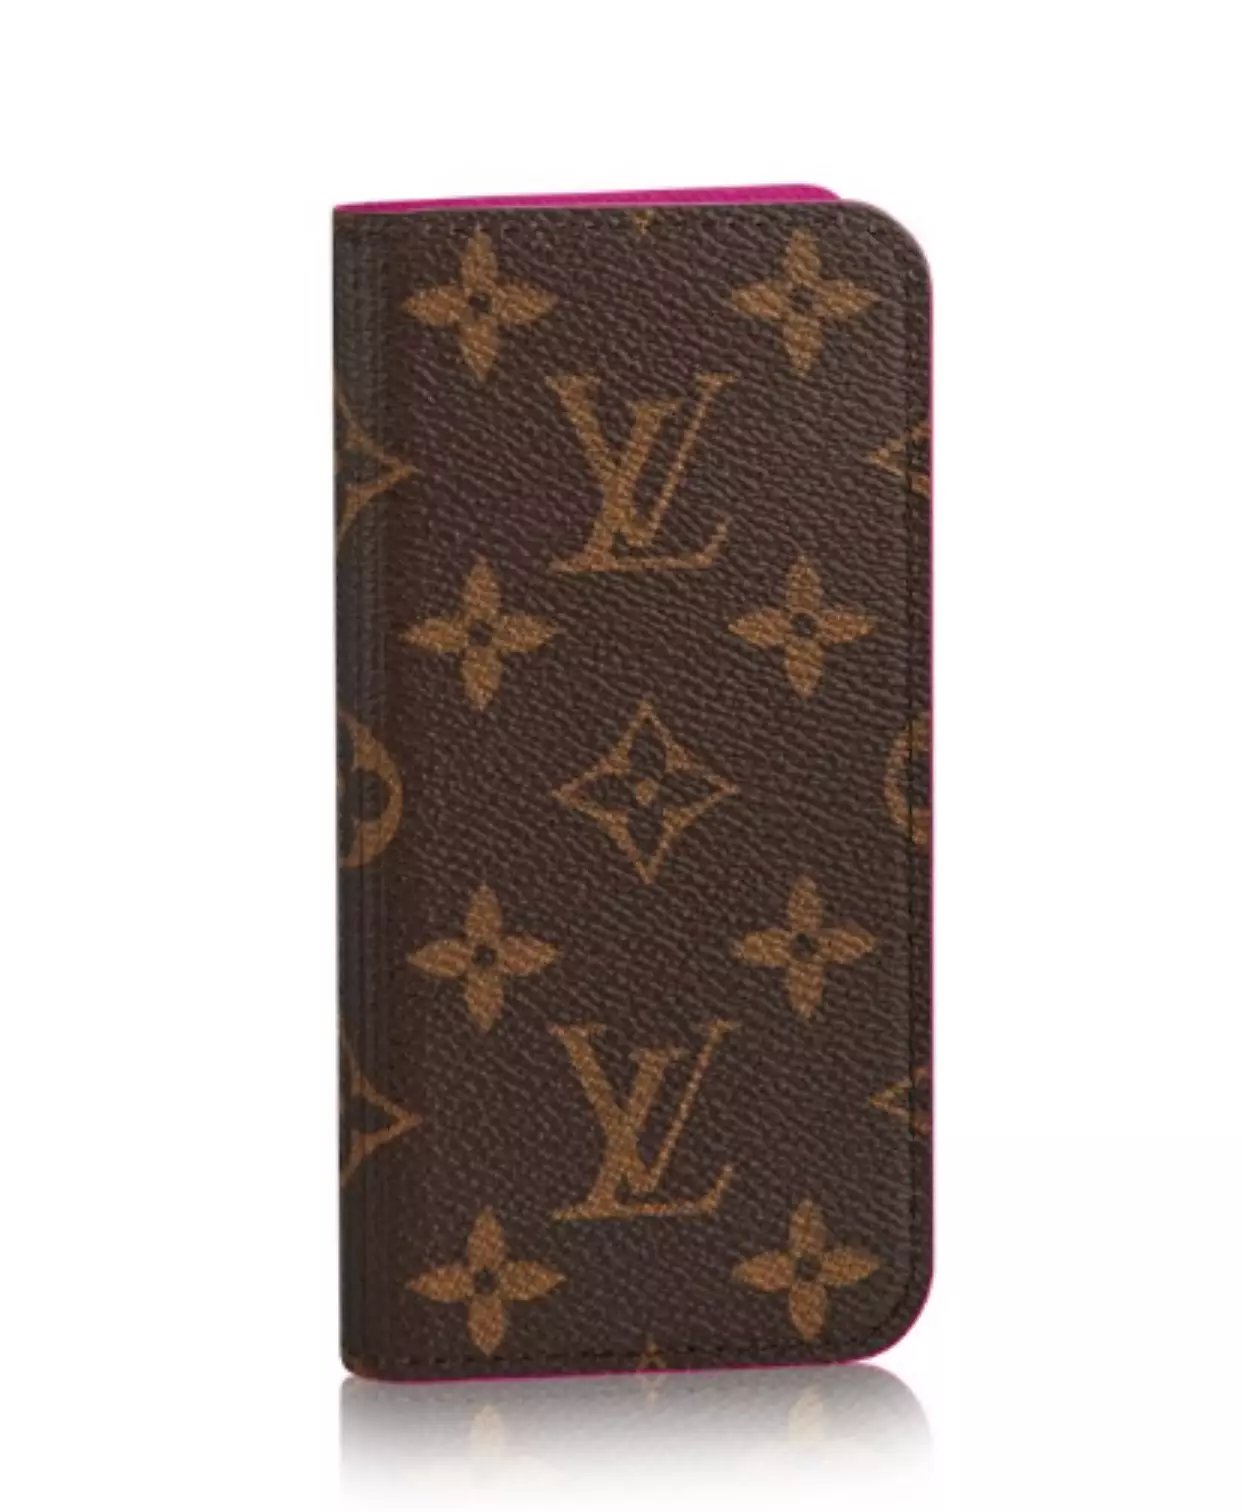 iphone case mit foto iphone hüllen shop Louis Vuitton iphone6s plus hülle iphone etuis apple iphone schutzhülle hülle für iphone 3gs gummihülle iphone 6s Plus 6s a6s iphone iphone hülle was6srdicht